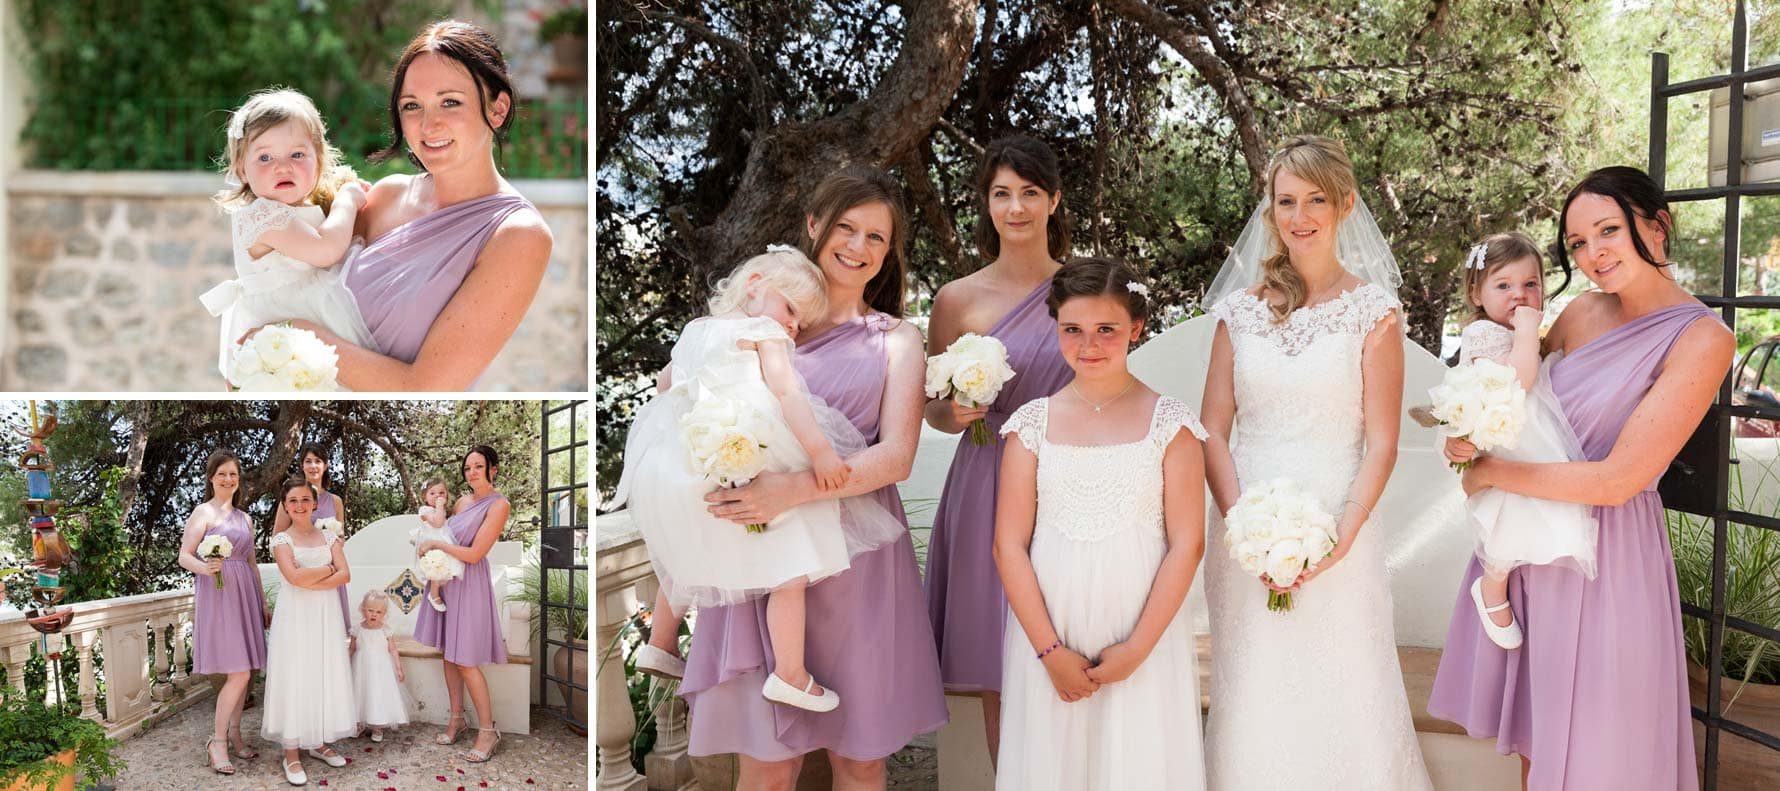 The bridesmaids by Mallorca wedding photographer in Port de Soller